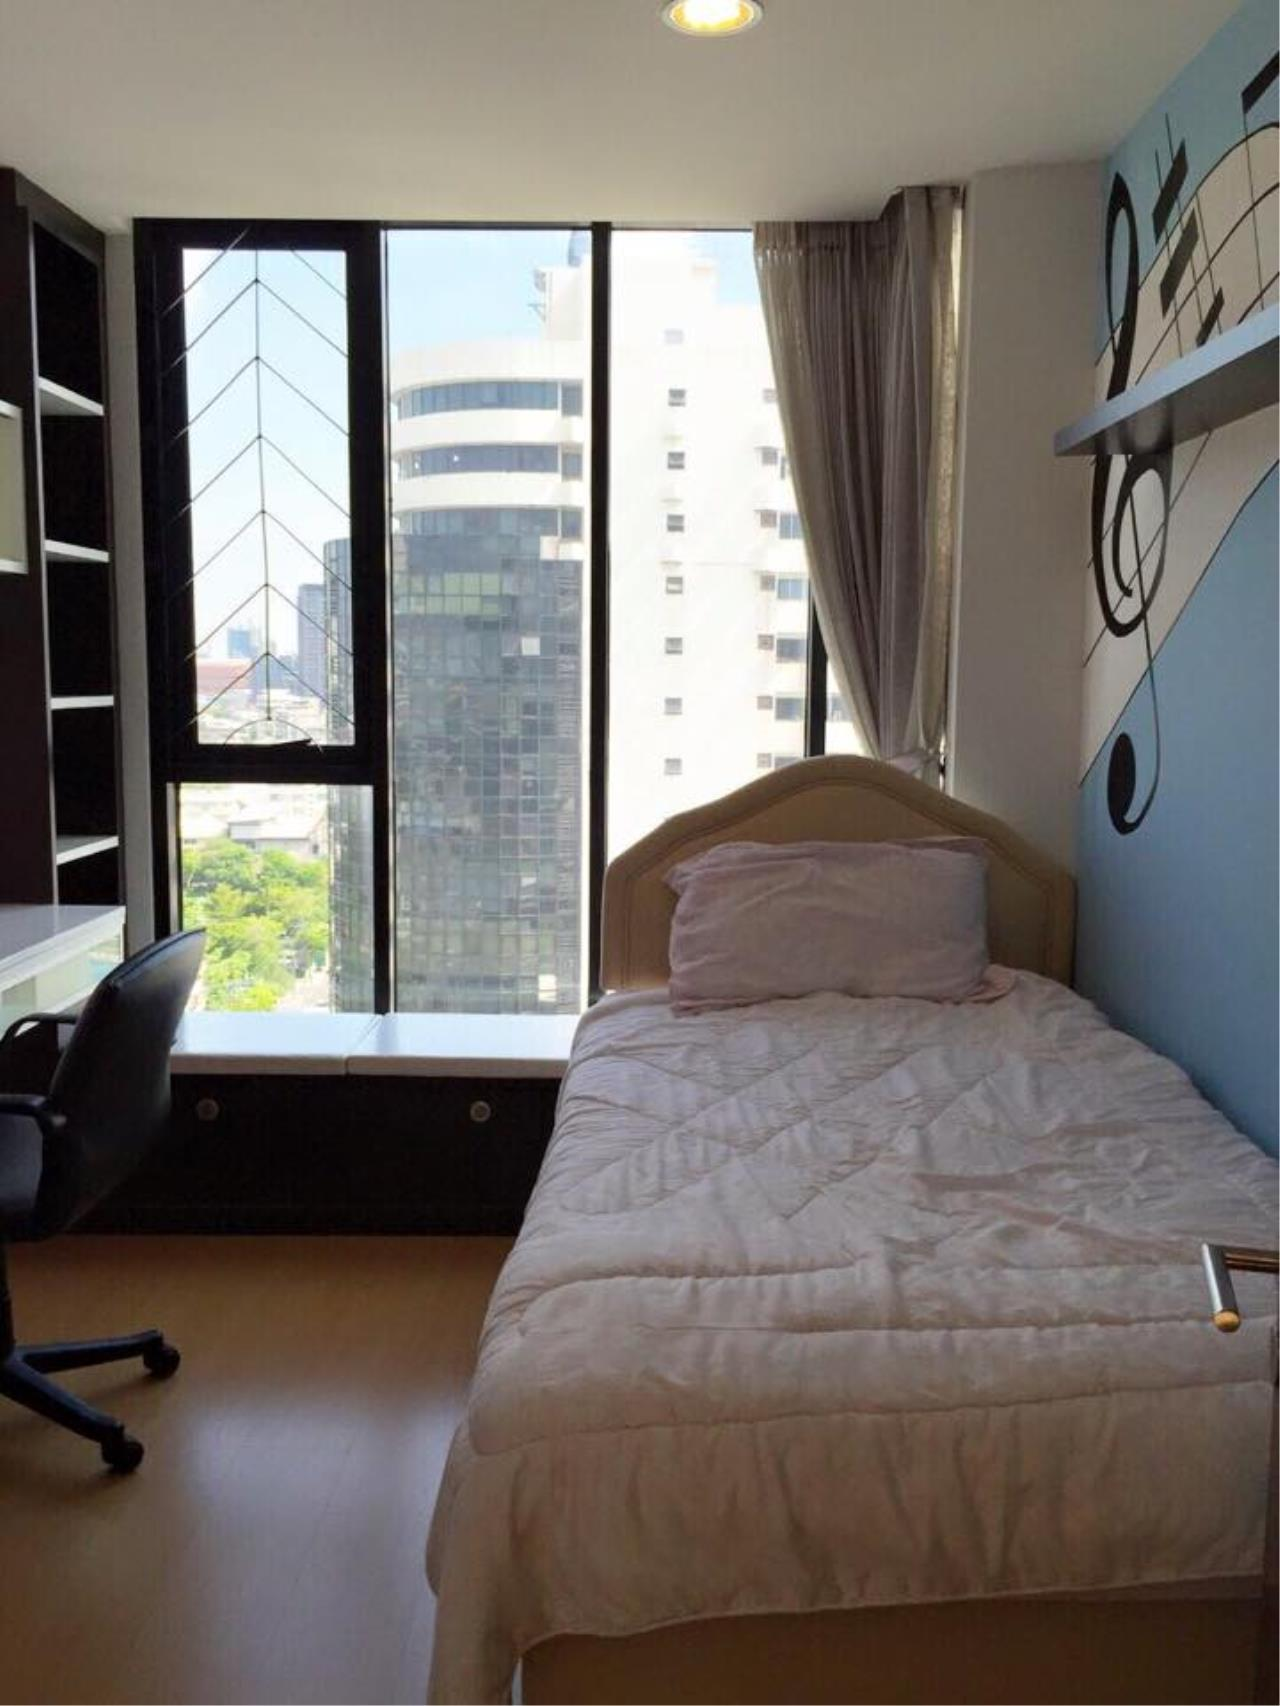 Piri Property Agency's 2 bedrooms Condominium  on 16 floor For Sale 2 3